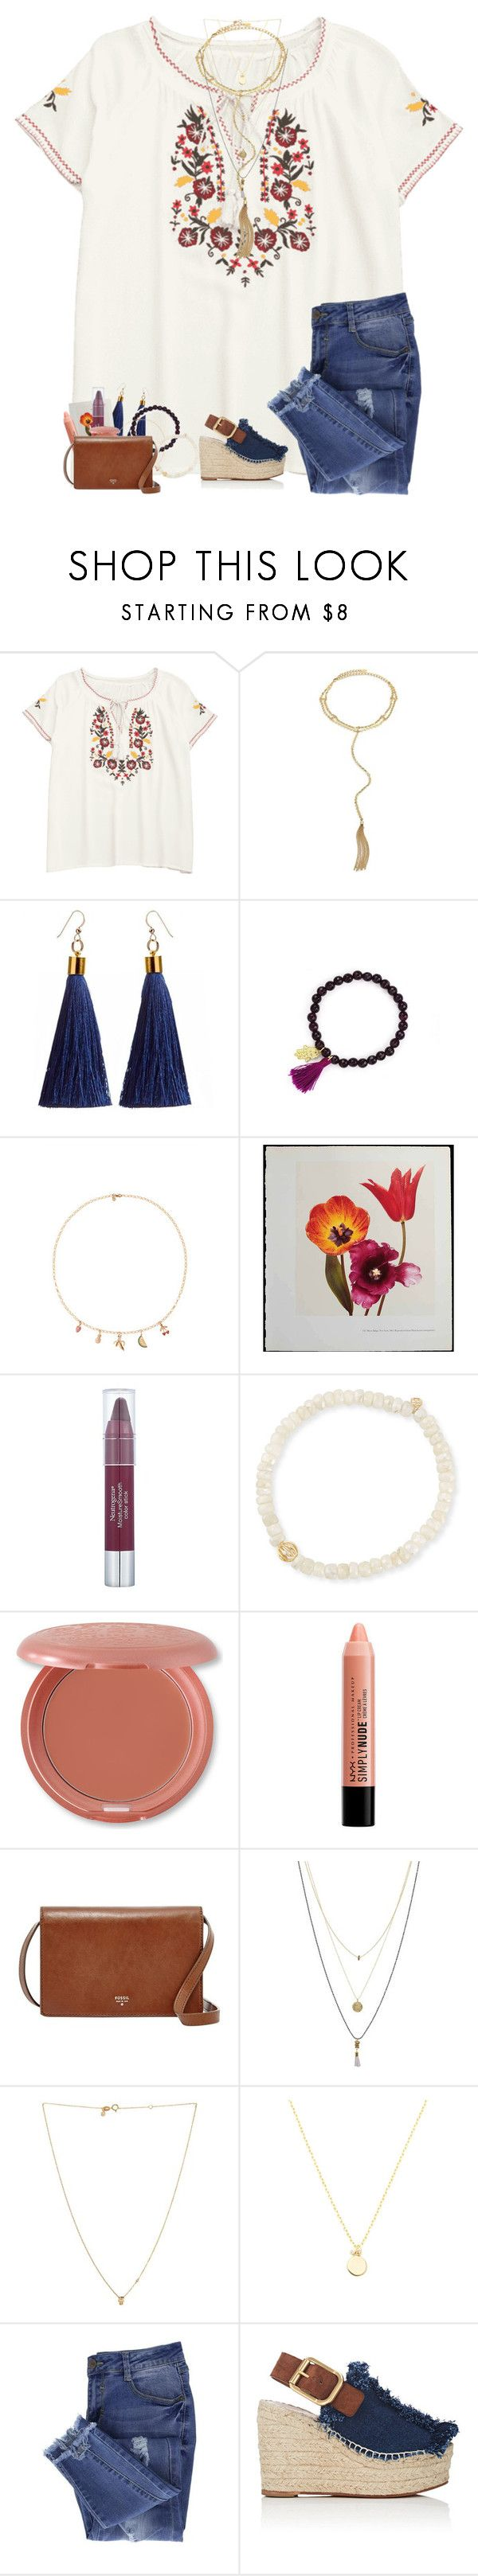 """""""Psalms 103:2-5"""" by livnewell ❤ liked on Polyvore featuring Ettika, Feather & Stone, Sydney Evan, Neutrogena, Stila, FOSSIL, Towne & Reese, Essie and Chloé"""